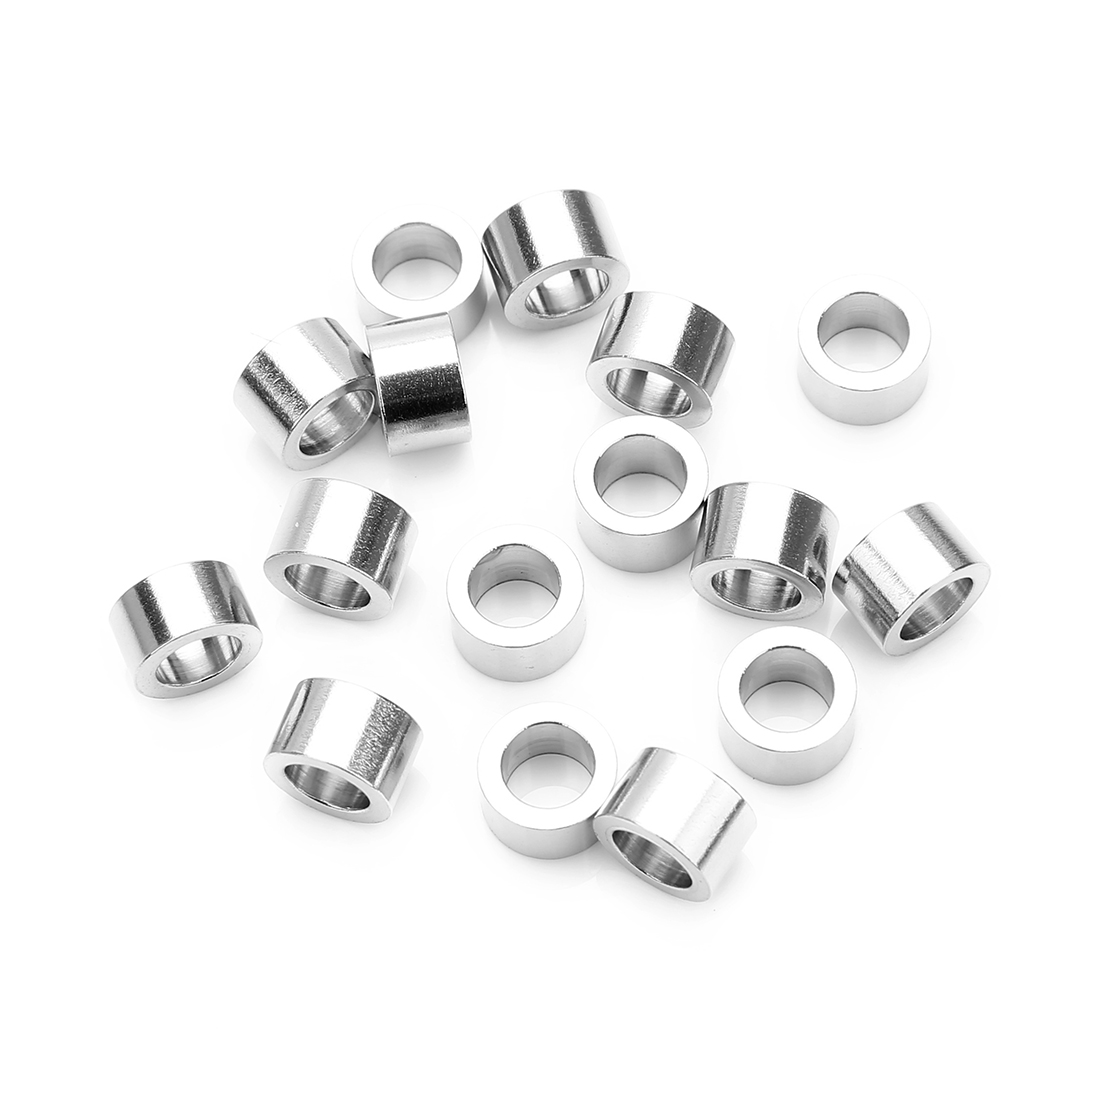 20pcs Stainless Steel Metal Beads Cylinder Loose Spacers Large Hole 4x5mm